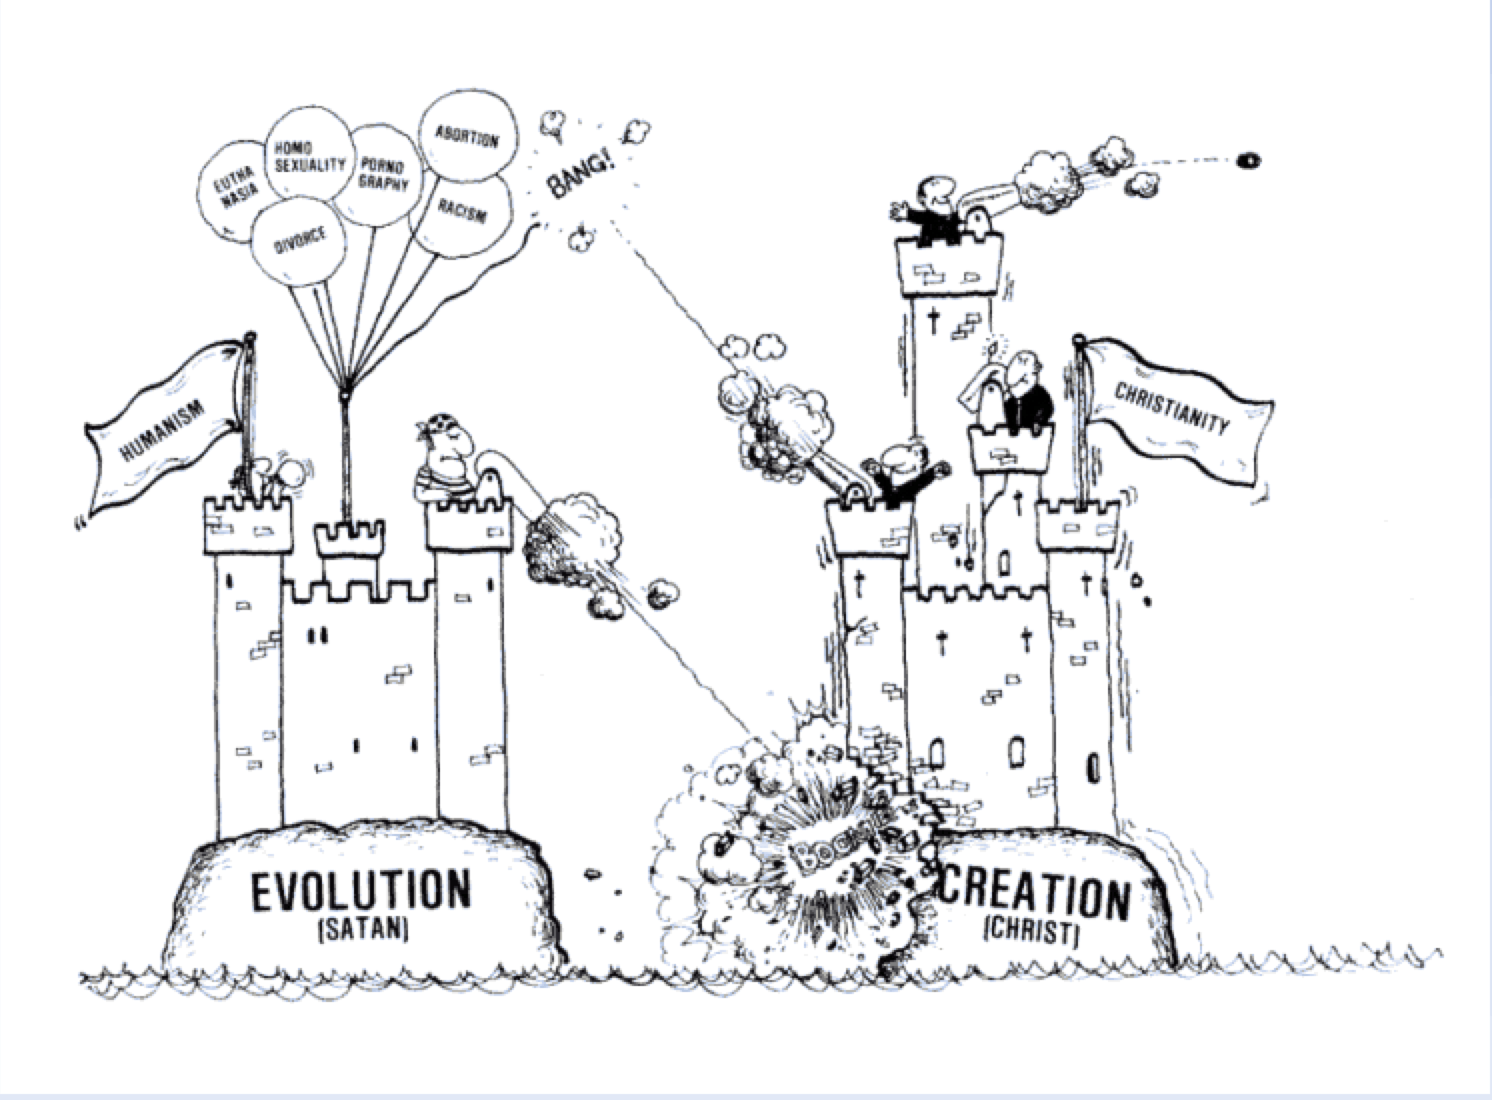 Atlanta students angered by cartoon depicting evolution as